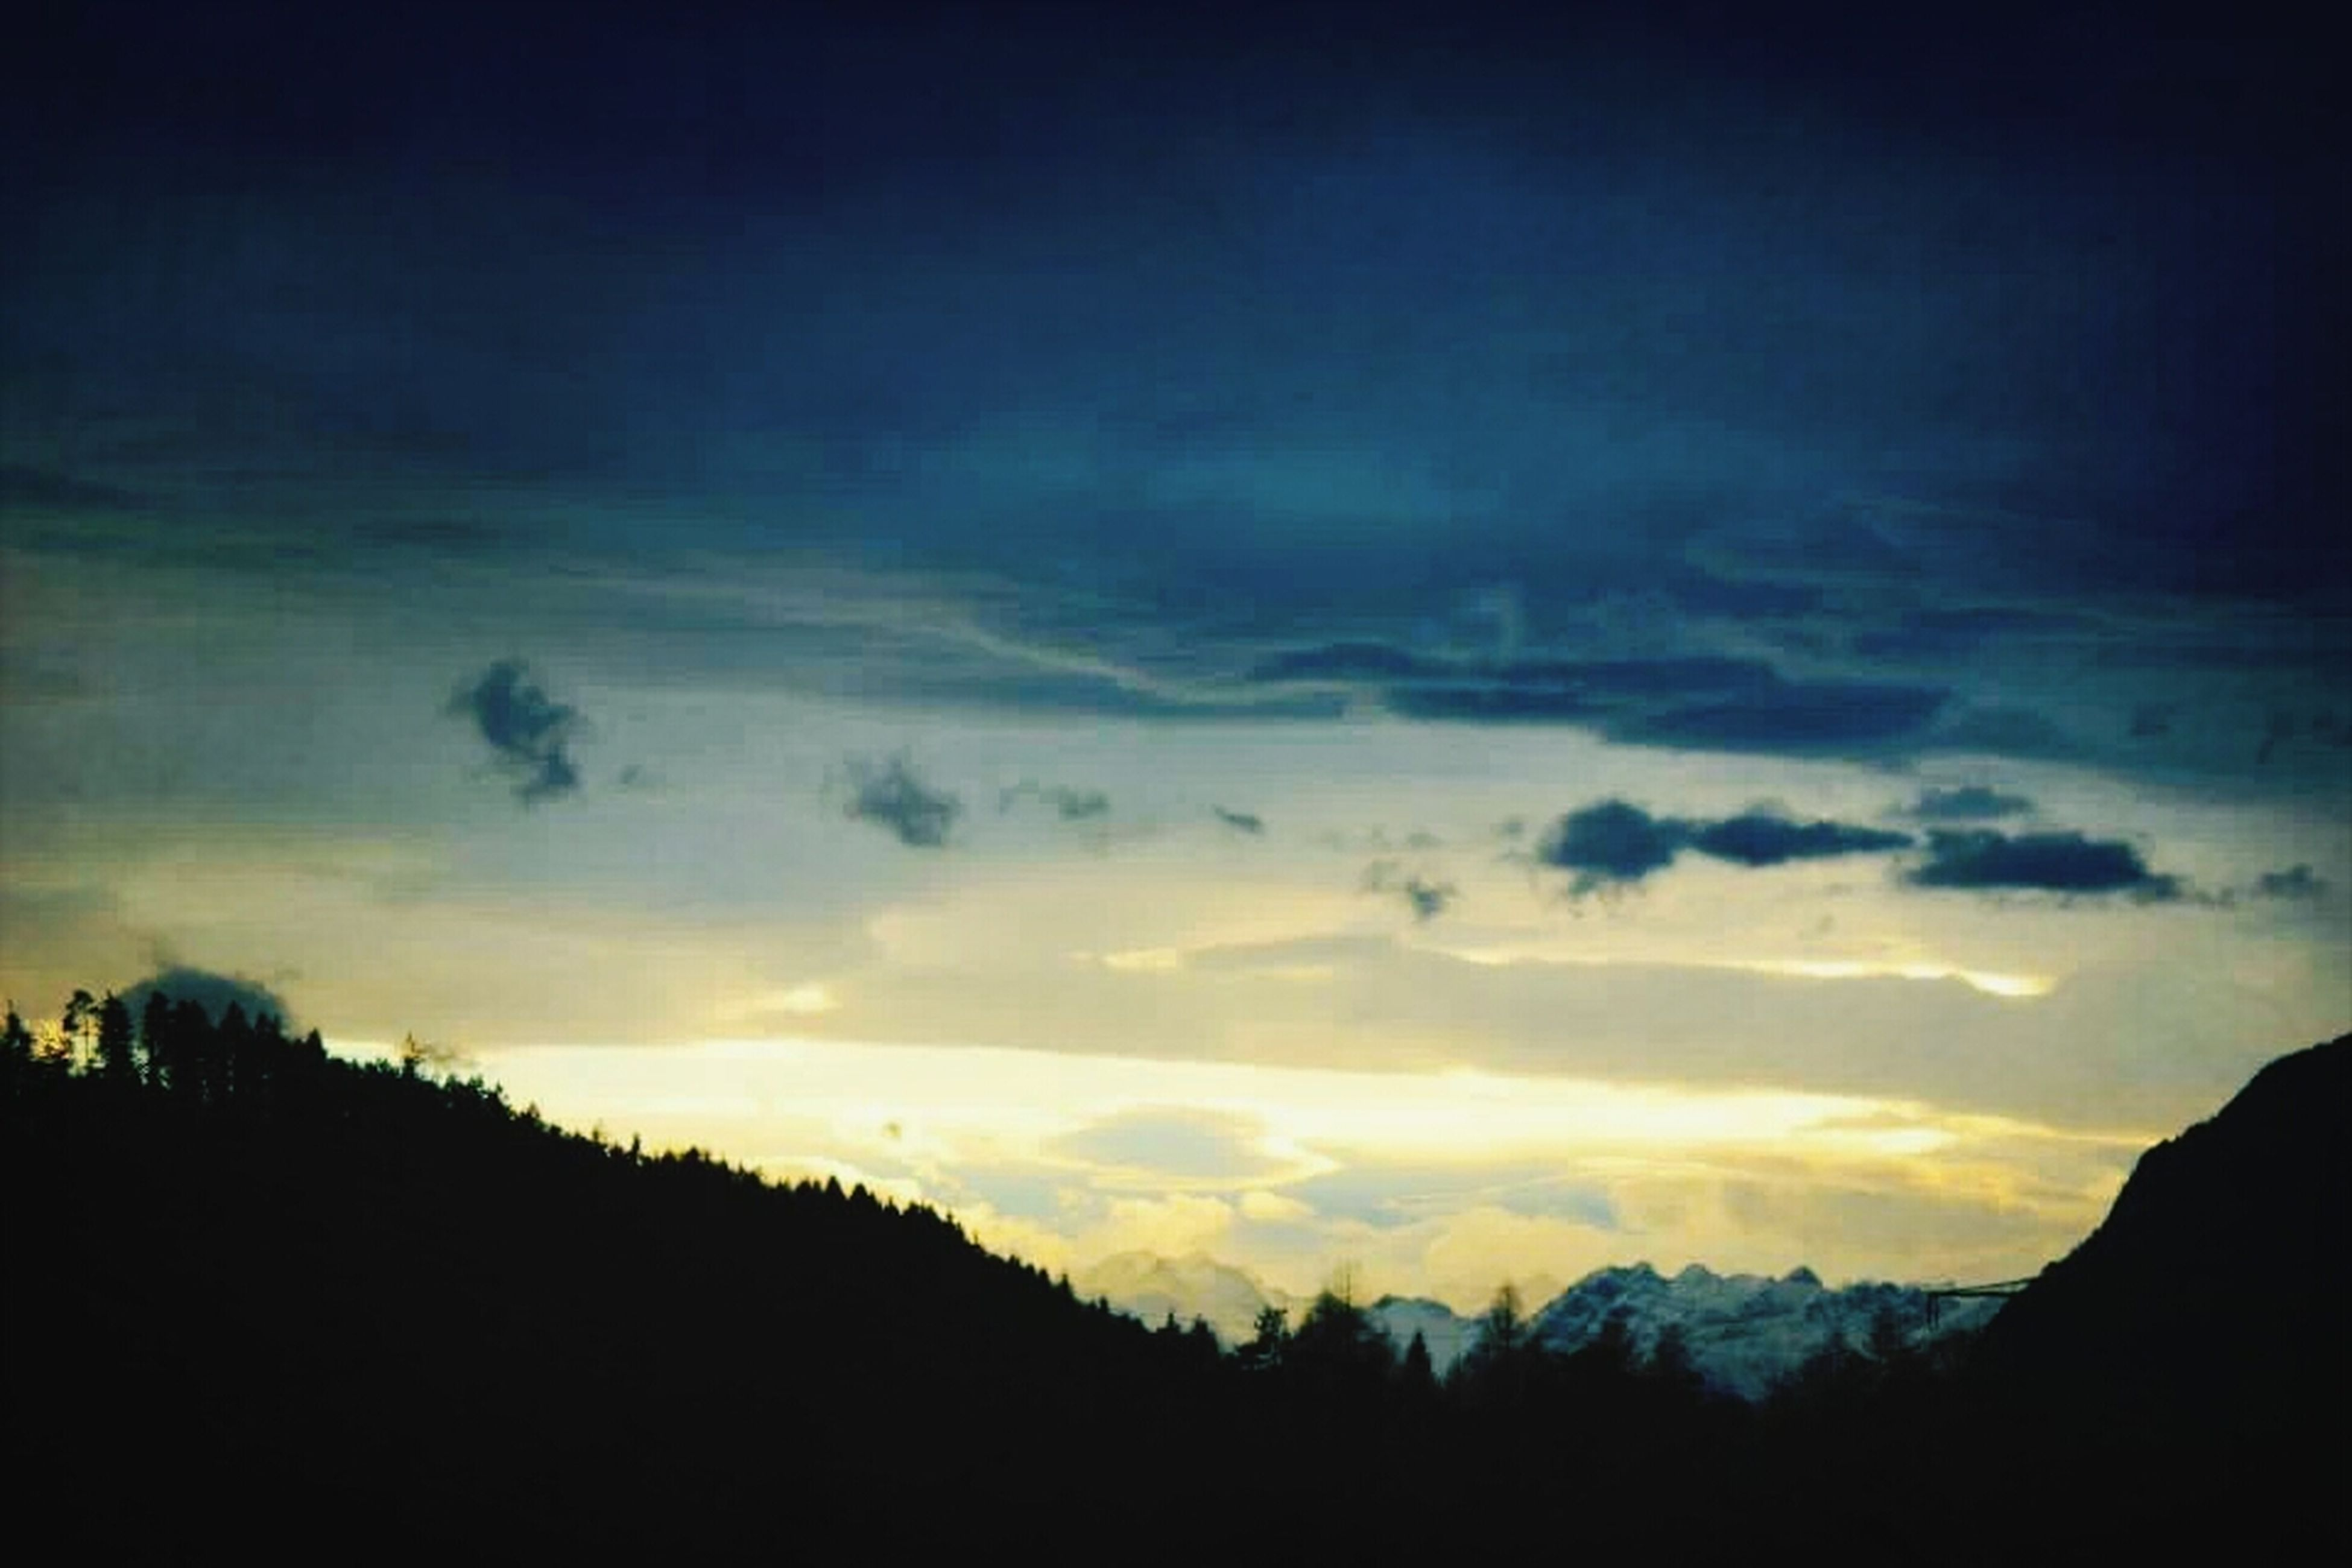 silhouette, tranquil scene, scenics, tranquility, sky, beauty in nature, sunset, cloud - sky, nature, mountain, landscape, tree, idyllic, dusk, dark, cloud, non-urban scene, outdoors, cloudy, no people